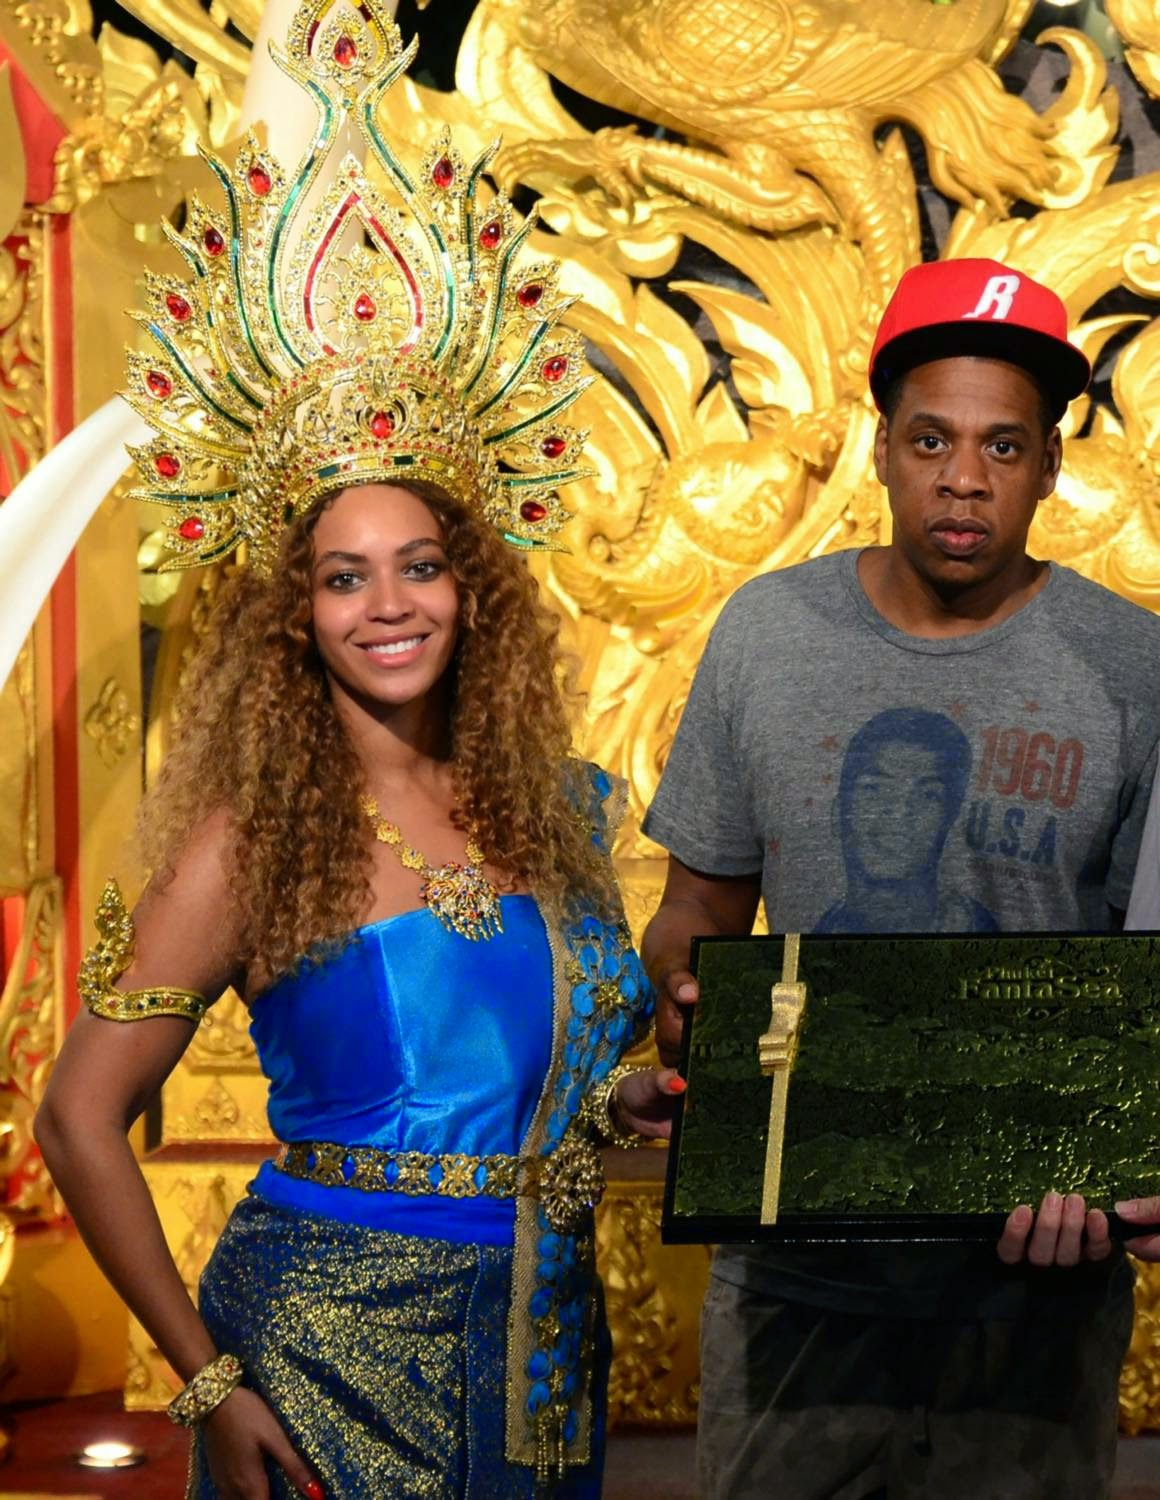 Jay-Z and Beyonce Celebrate New Year in Phuket, Thailand